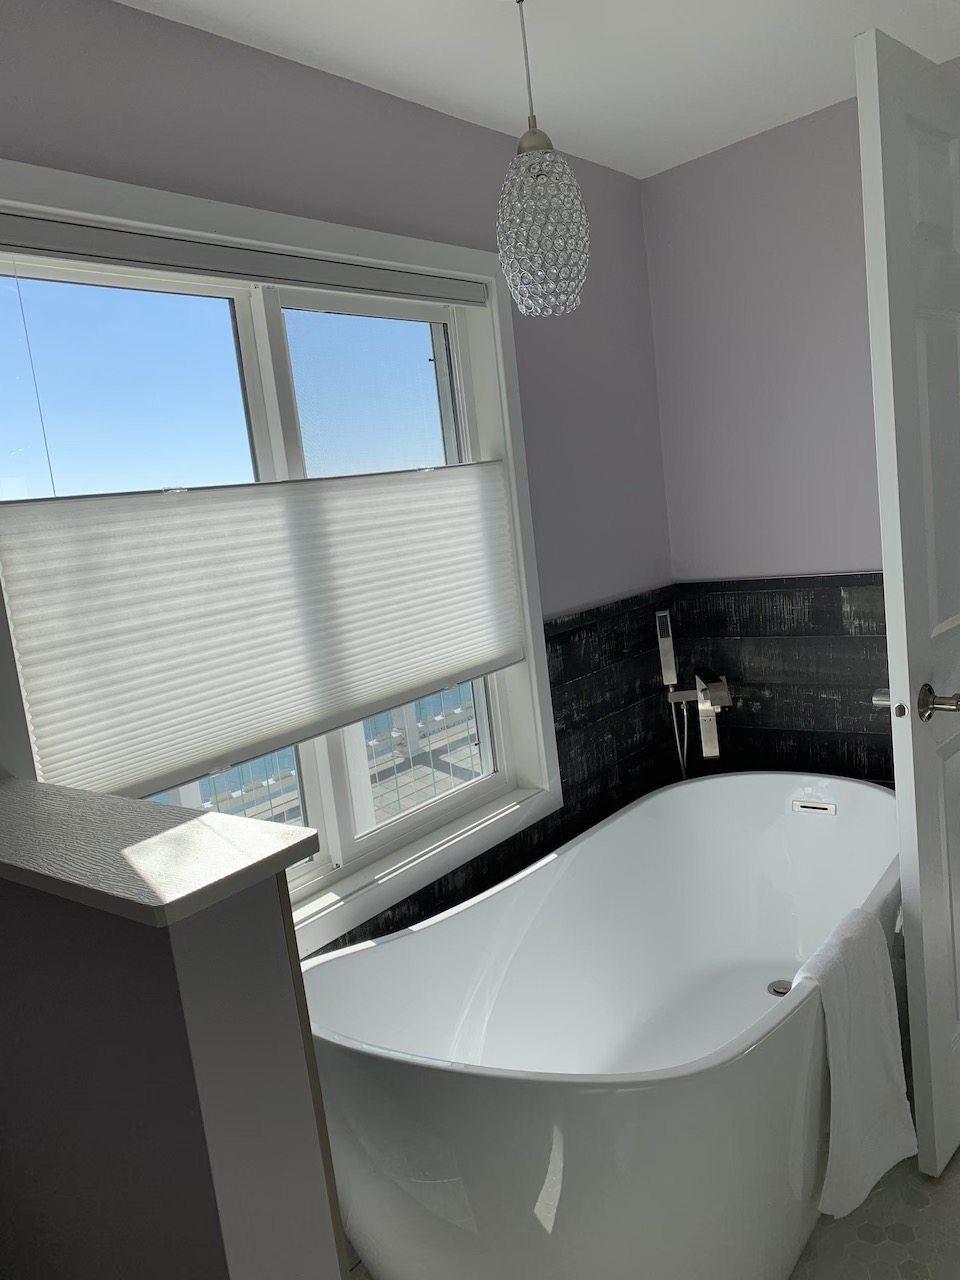 Our Beautiful soaker tub overlooking the beach. Enjoy a glass of wine while relaxing in the tub.